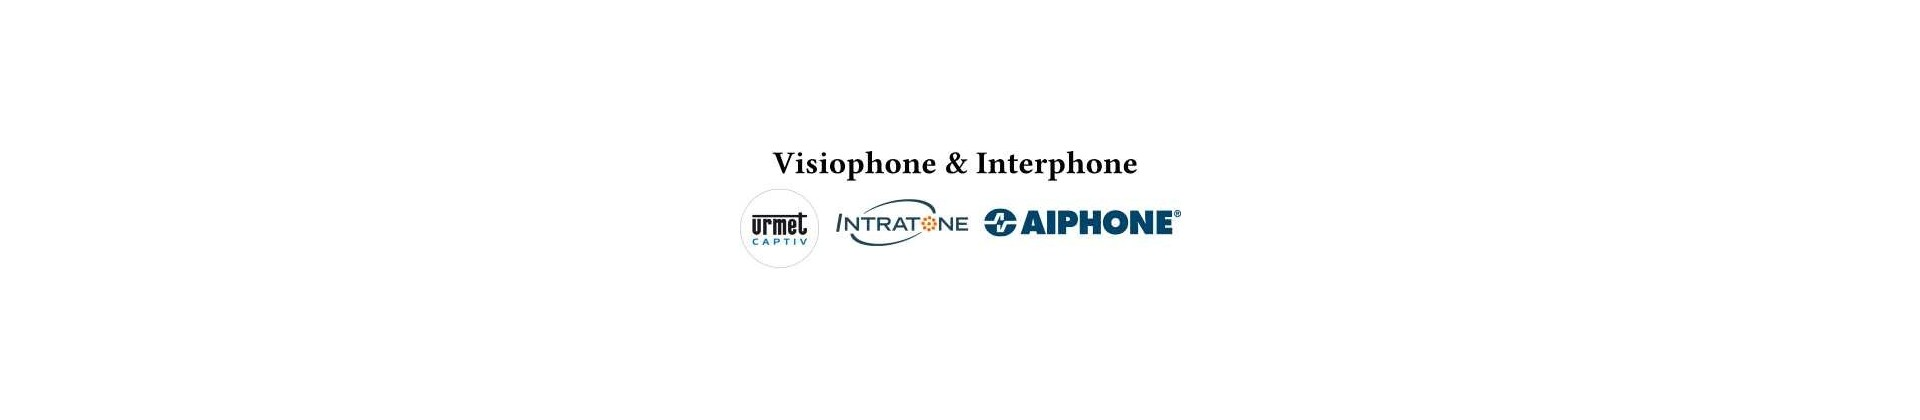 Interphones visiophones